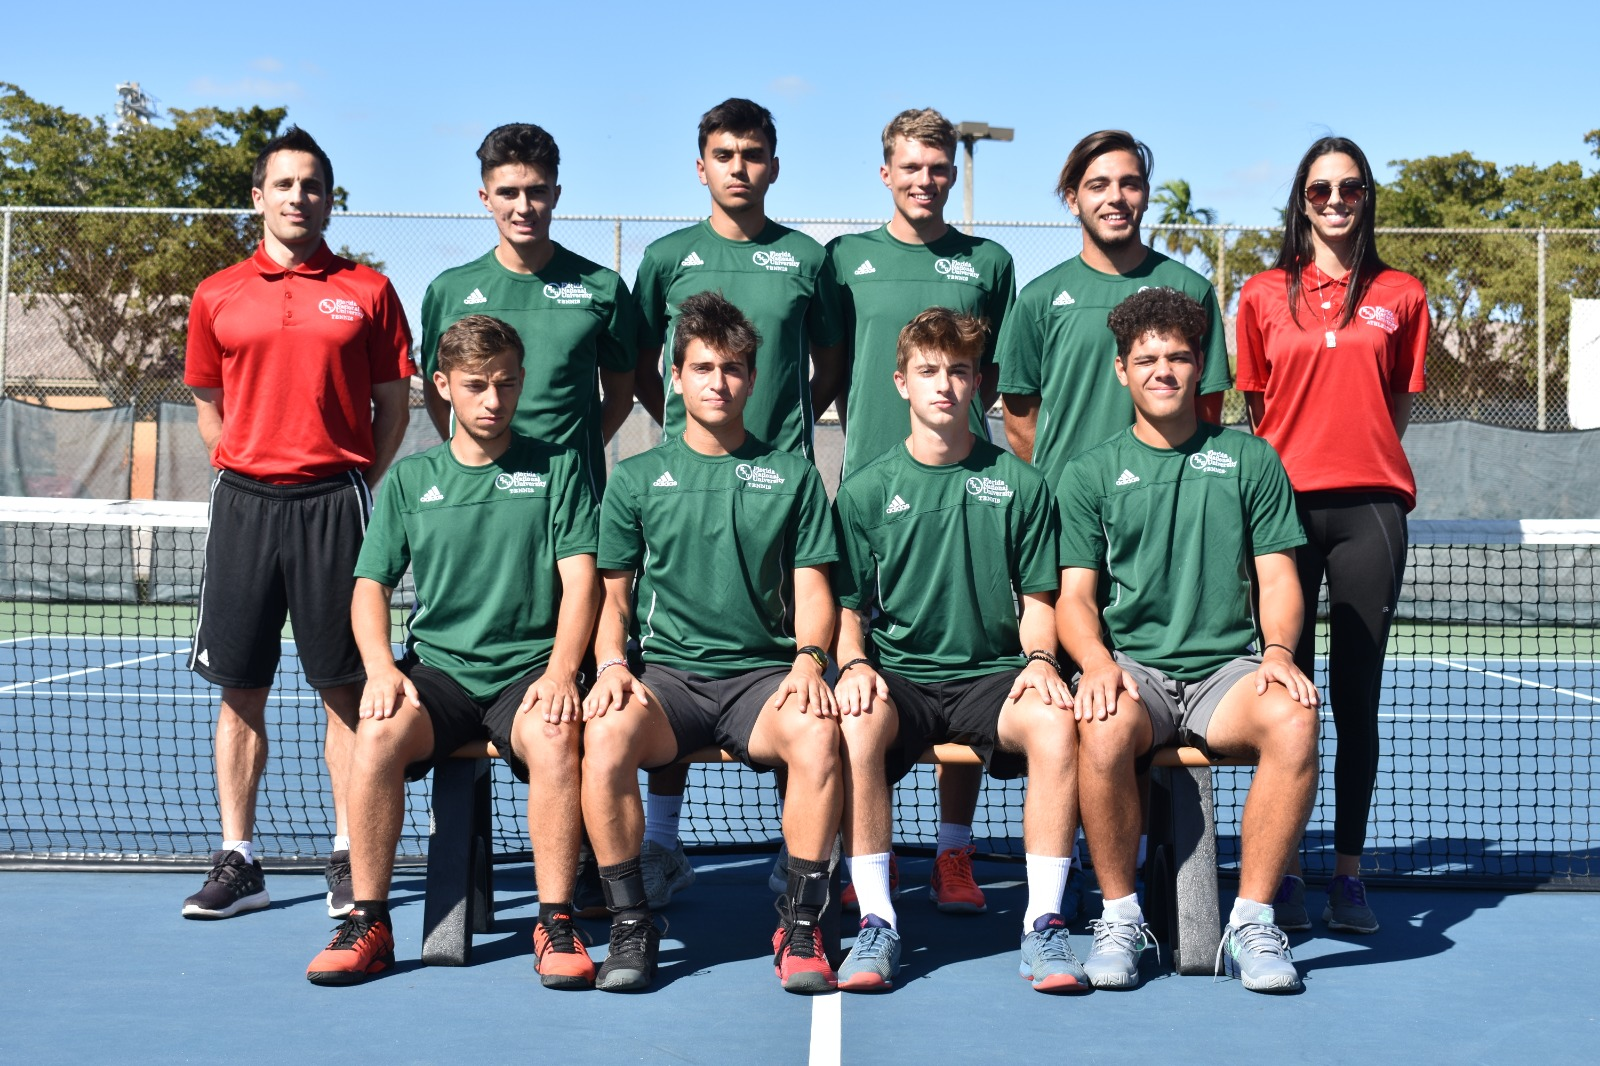 Men's Tennis Team picture